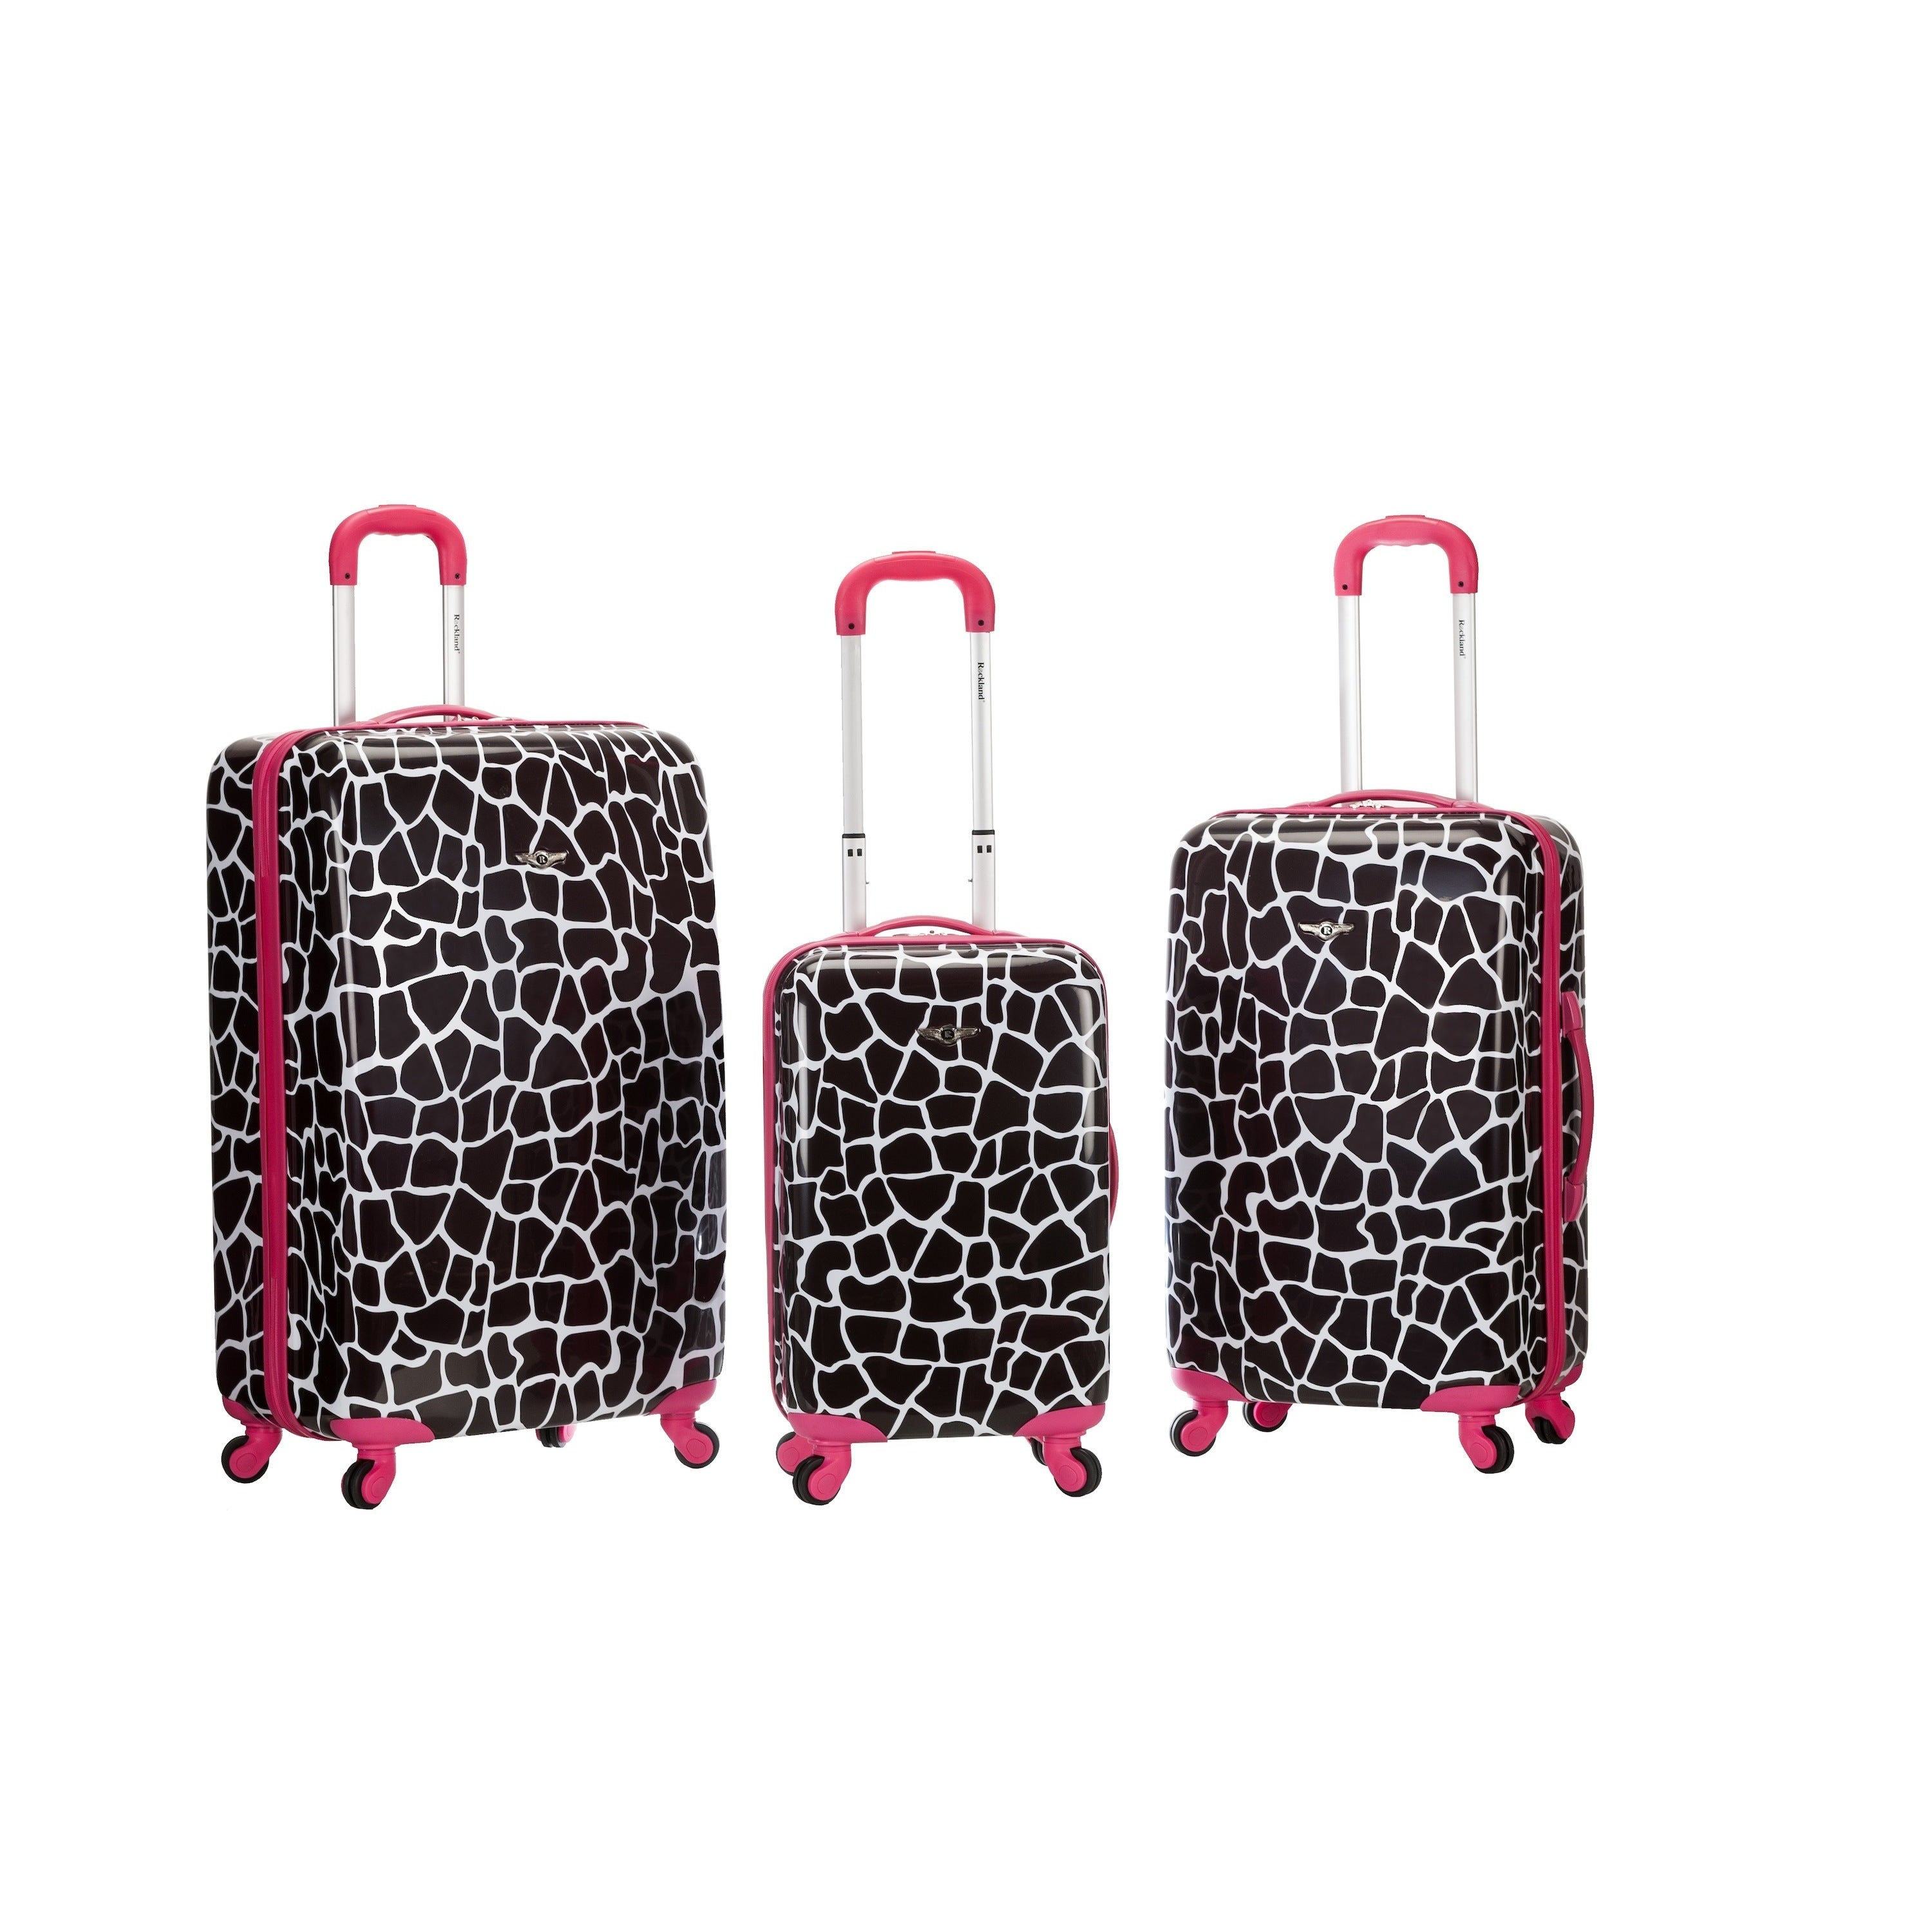 Rockland Pink Giraffe 3-piece Lightweight Hardside Spinner Luggage Set